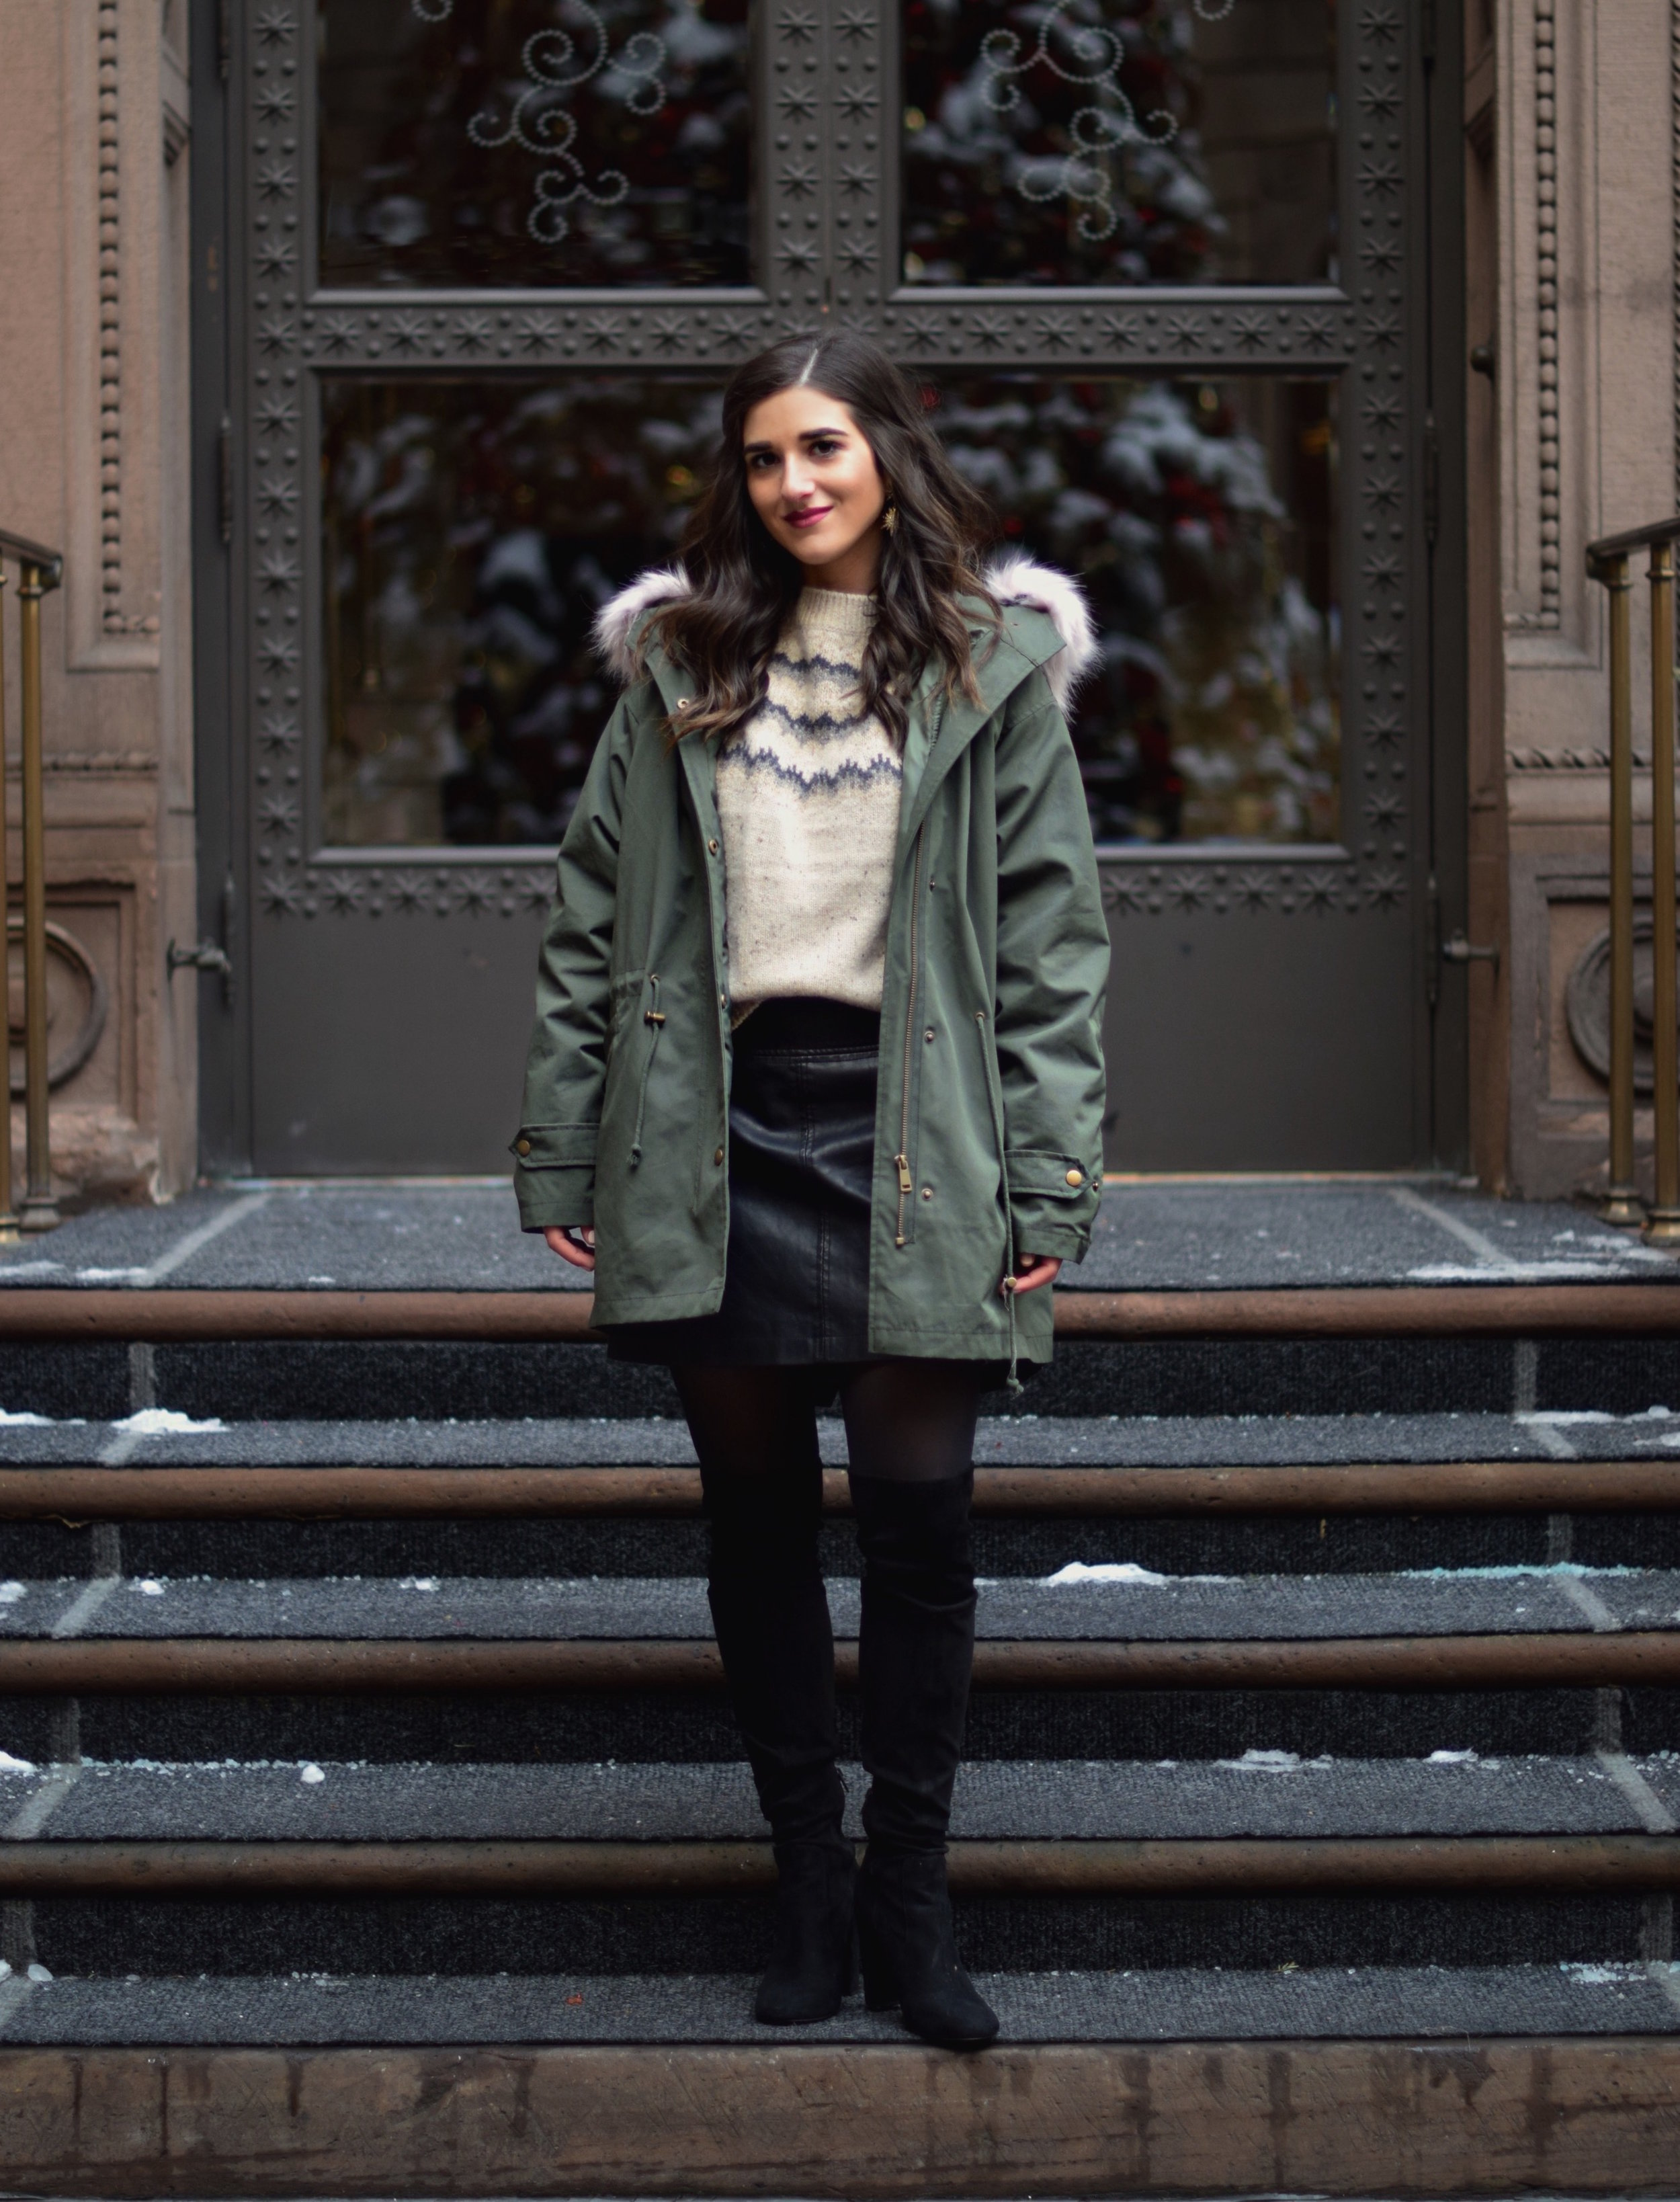 The Perfect Parka 10 Coats To Gift This Season Esther Santer Fashion Blog NYC Street Style Blogger Outfit OOTD Trendy Urban Outfitters Jacket Coat Girl Women Fur Hood Winter Black OTK Boots Cashmere Sweater Cold Weather Shoes Shopping Holiday Presents.jpg